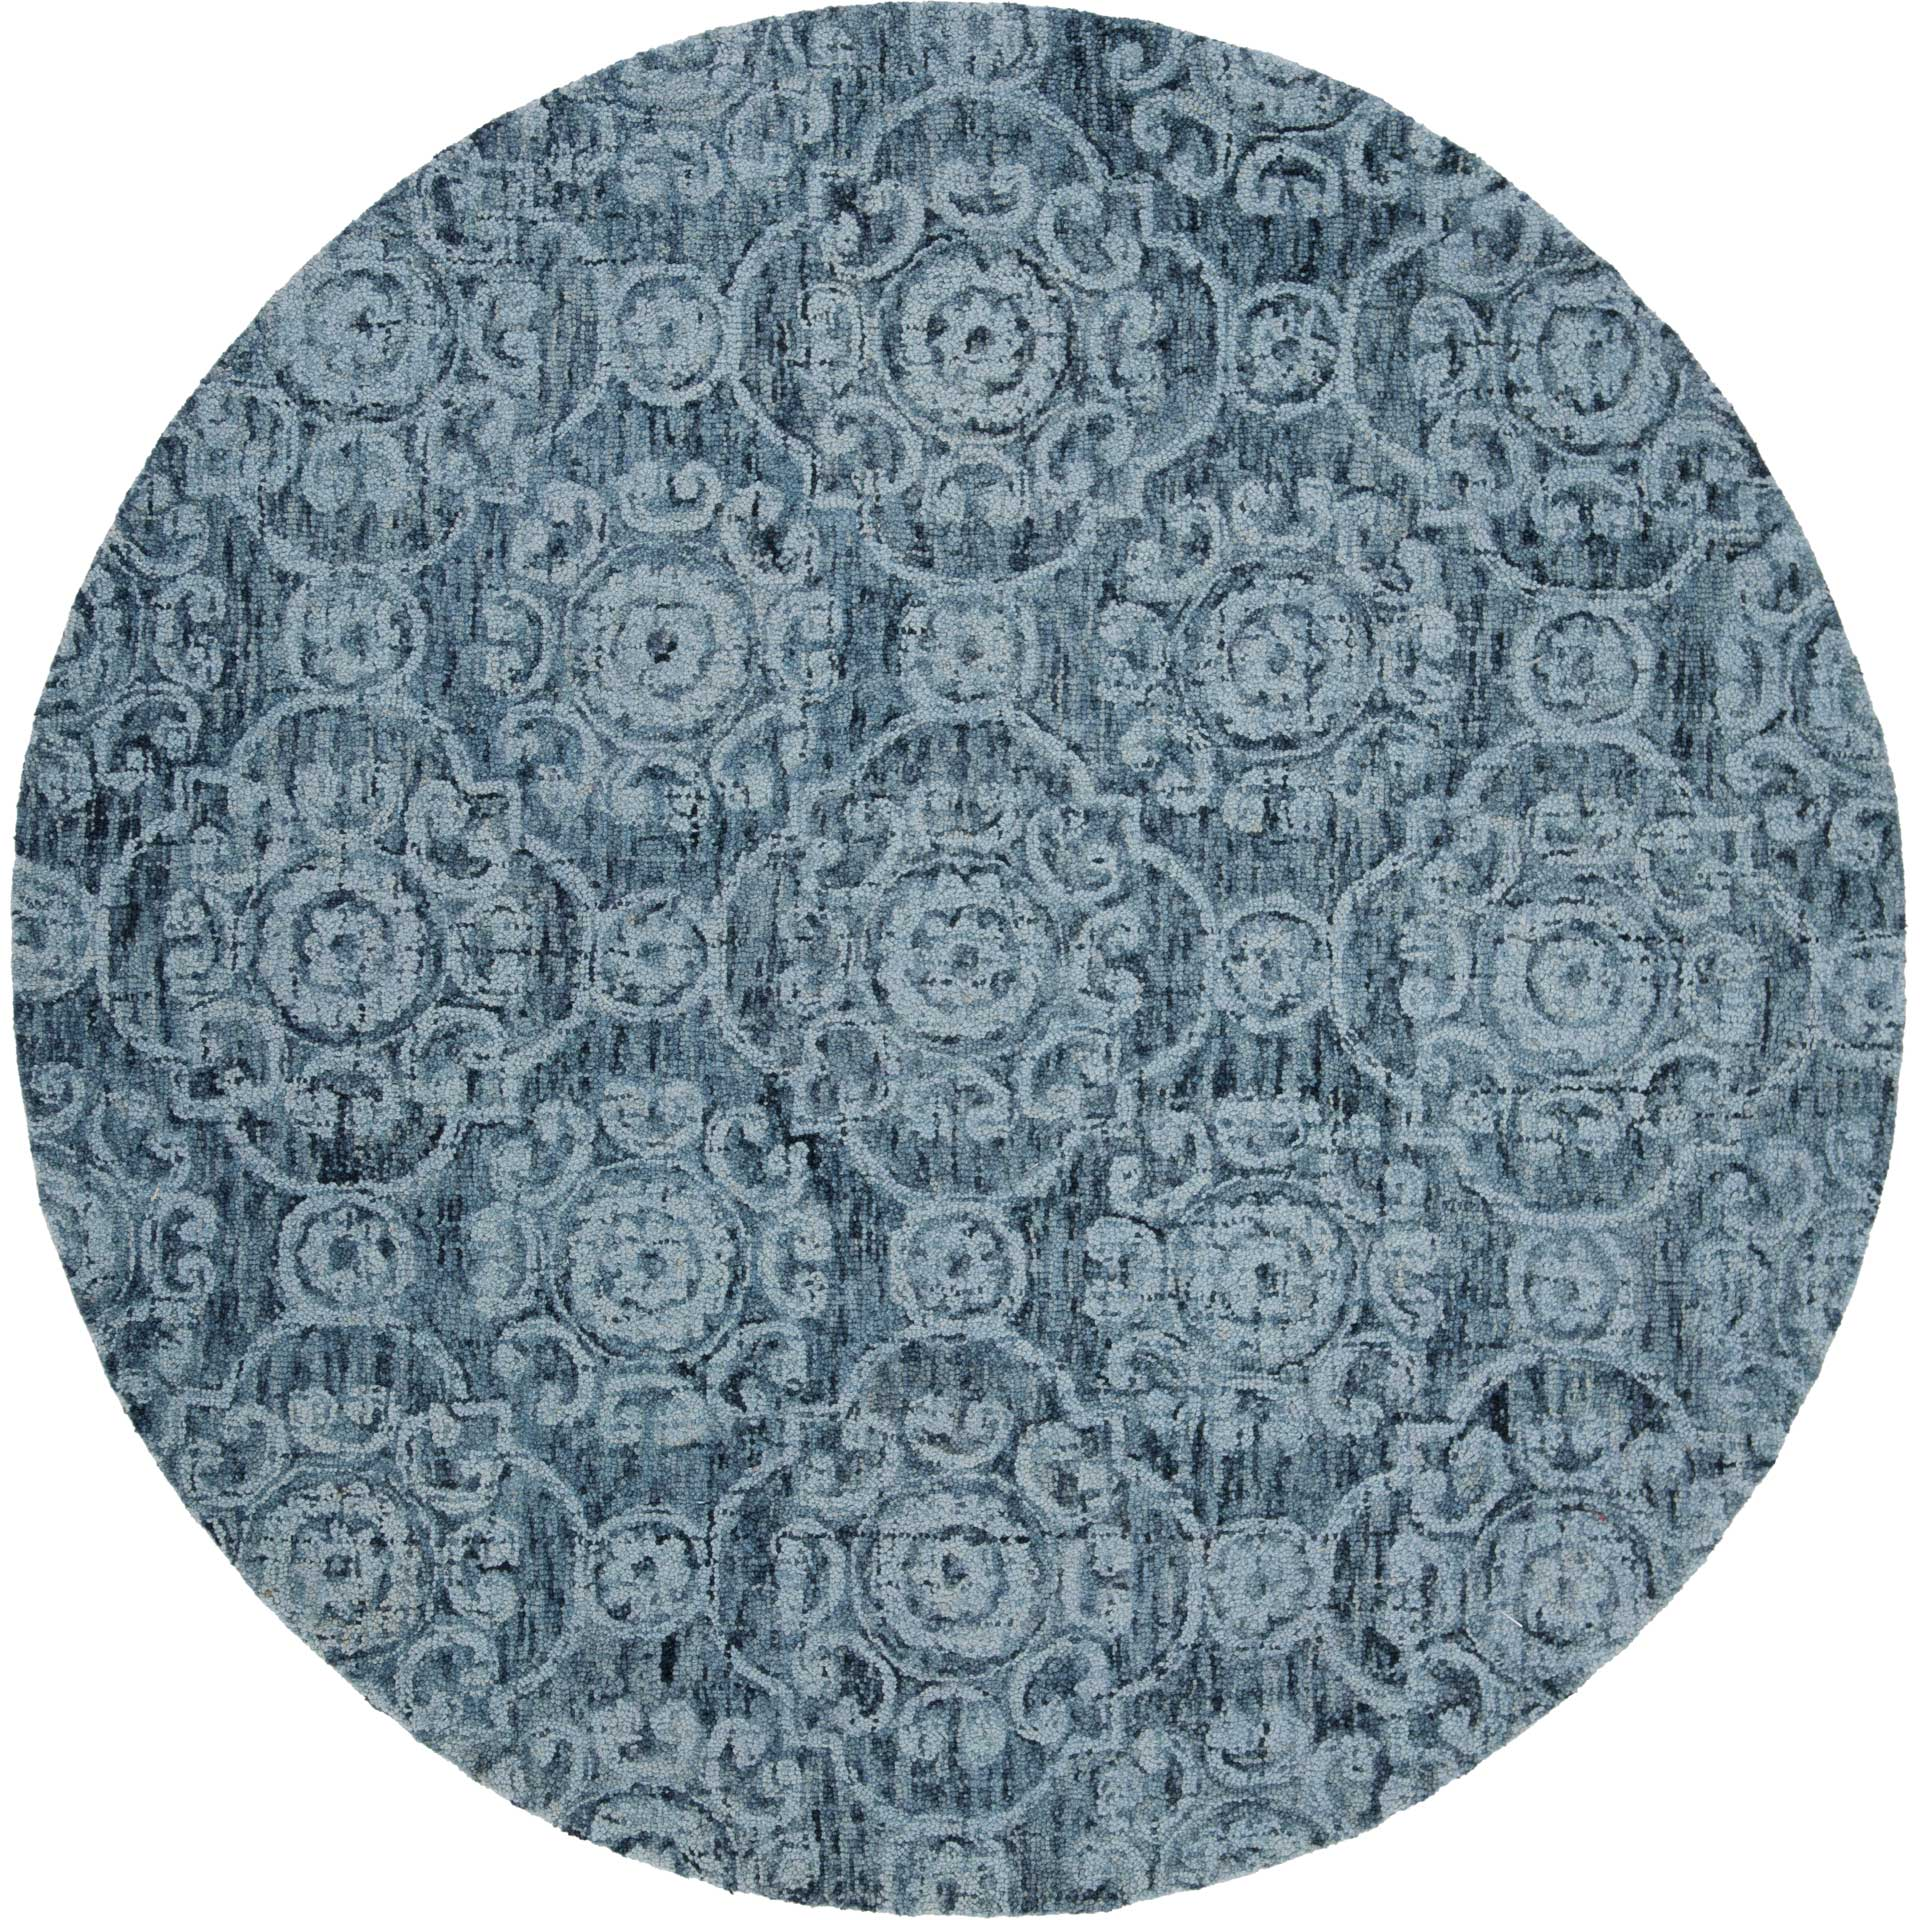 Abstract Blue Round Rug